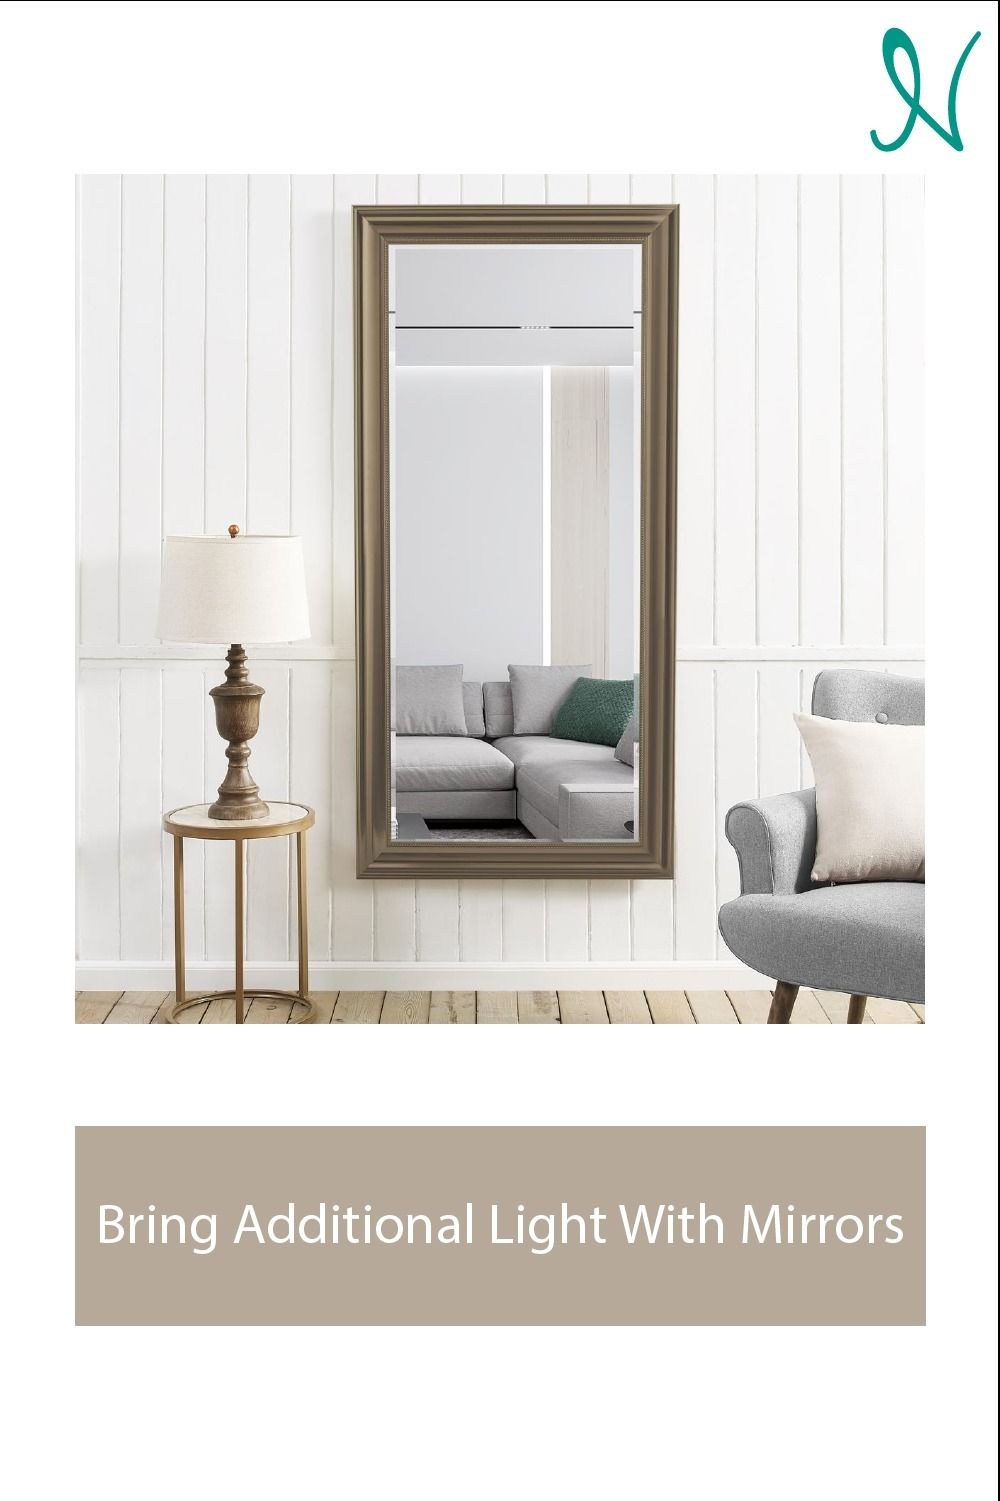 #Mirrors brings additional light and the feeling of additional space into a room. Check out the exclusive range of #floormirrors from Naomi Home. #NaomiHome #stylishfurniture #homedecor #homefurniture #decorlovers #smallspacefurniture #spacesaving #spacesavingfurniture #furniture #tips #mirror #wallmirror #accentmirror